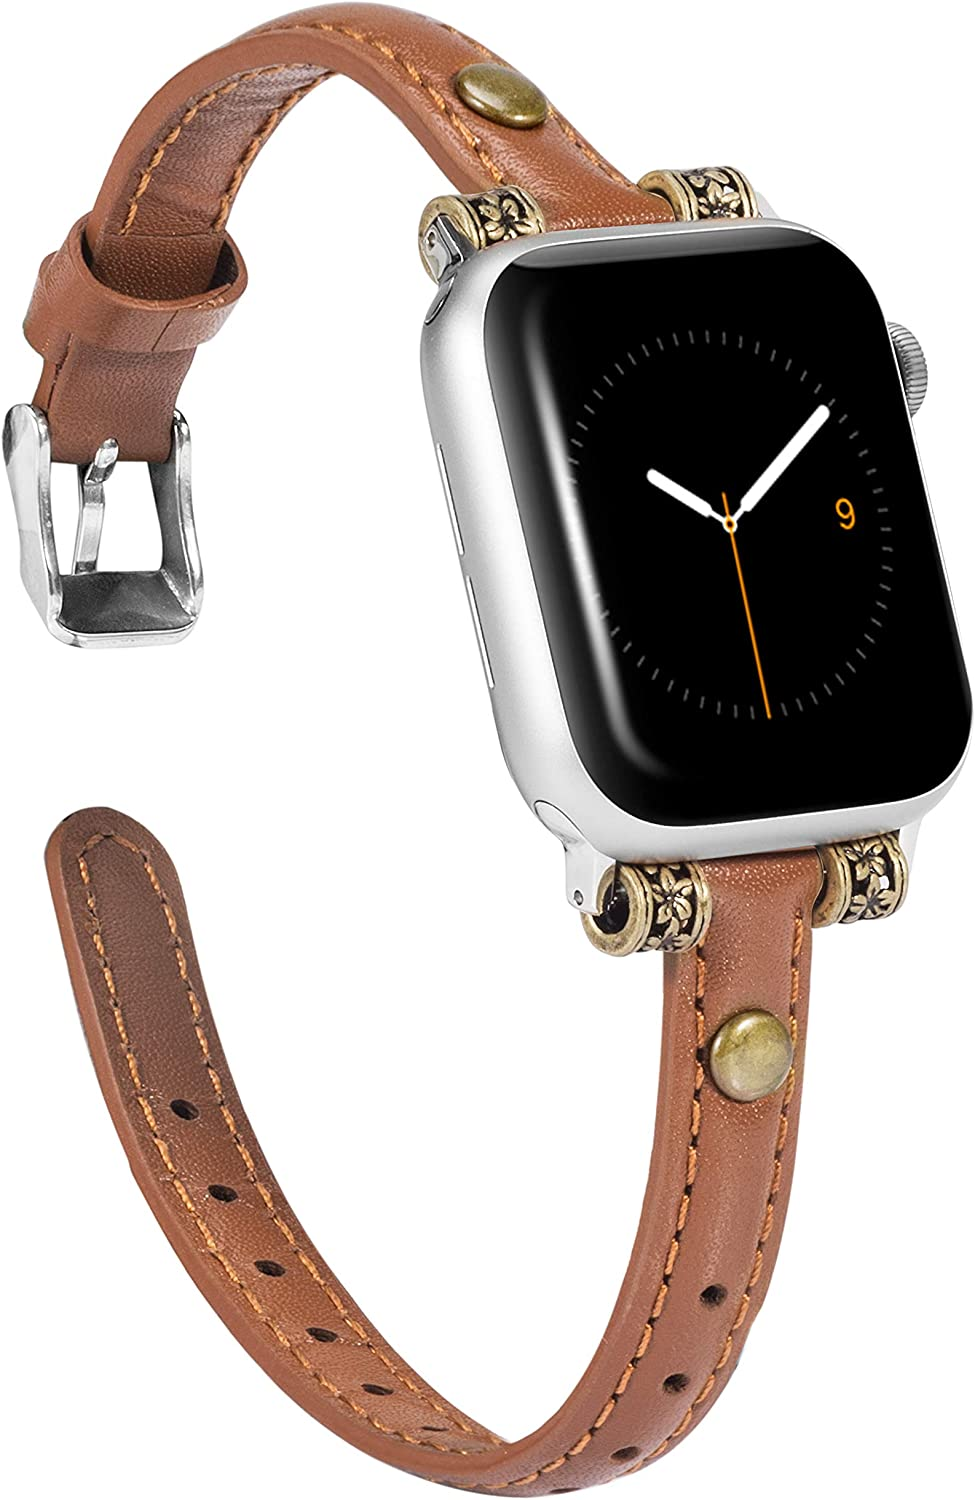 Wearlizer Leather Bands Compatible with Apple Watch Band 38mm 40mm for iWatch Womens Mens Special Slim Vintage Wristband Replacement Strap SE Series 6 5 4 3 2 1 Edition - Brown